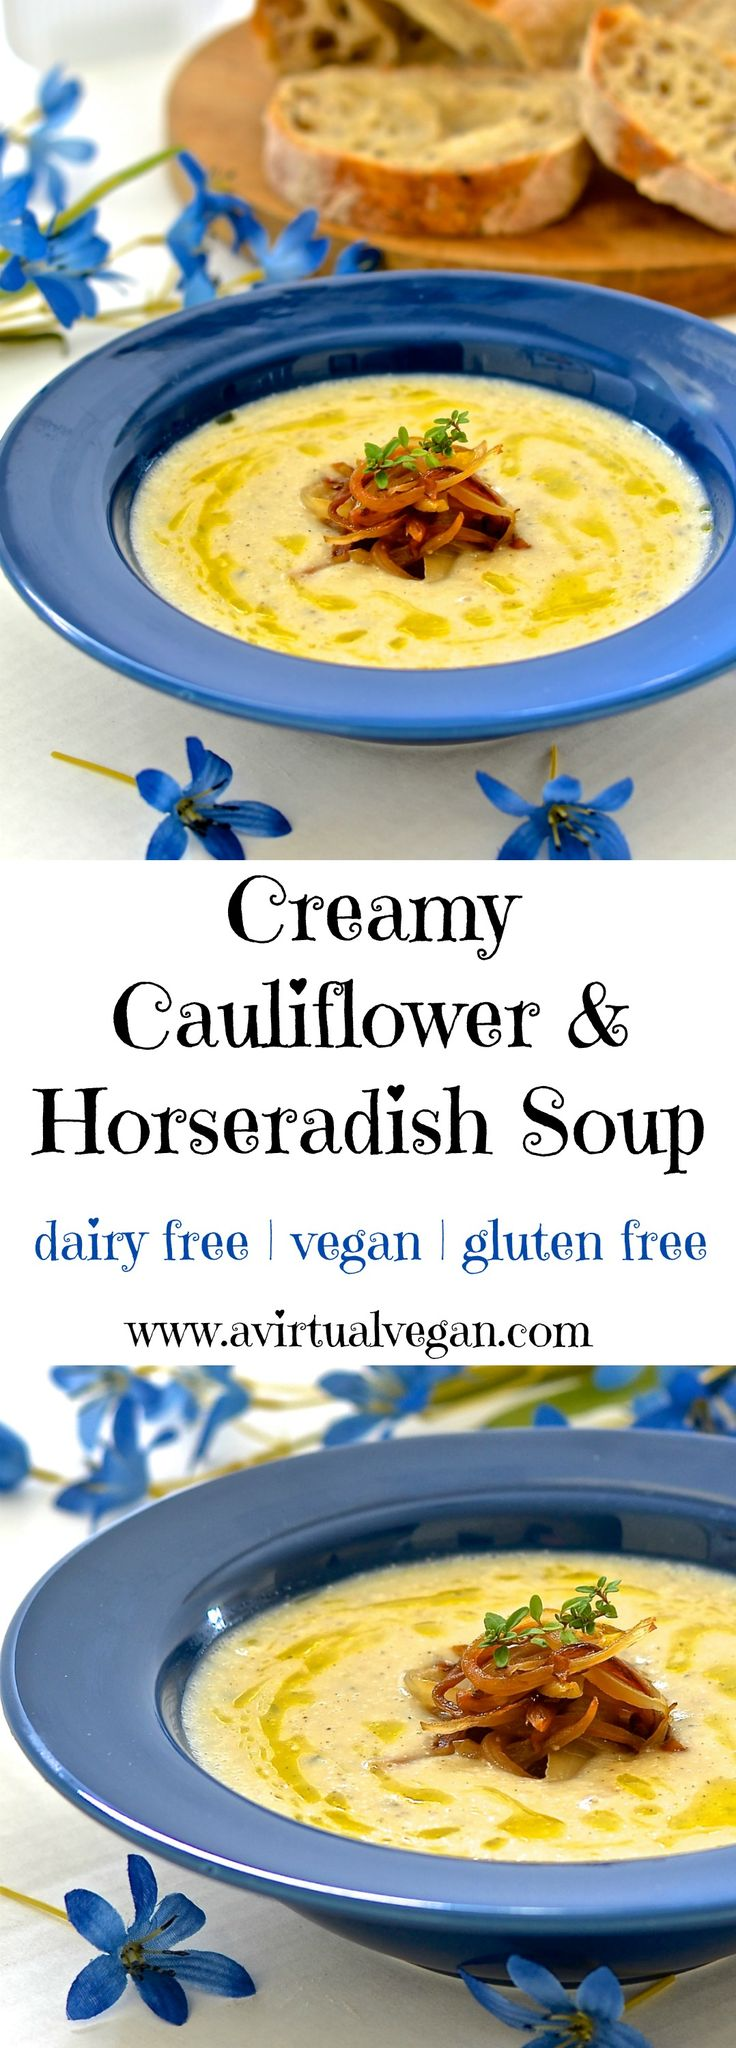 Don't be fooled by this soups deliciously creamy texture. It is actually extremely low in calories & has only 2 grams of fat per serving. It's also ready in under 20 minutes!